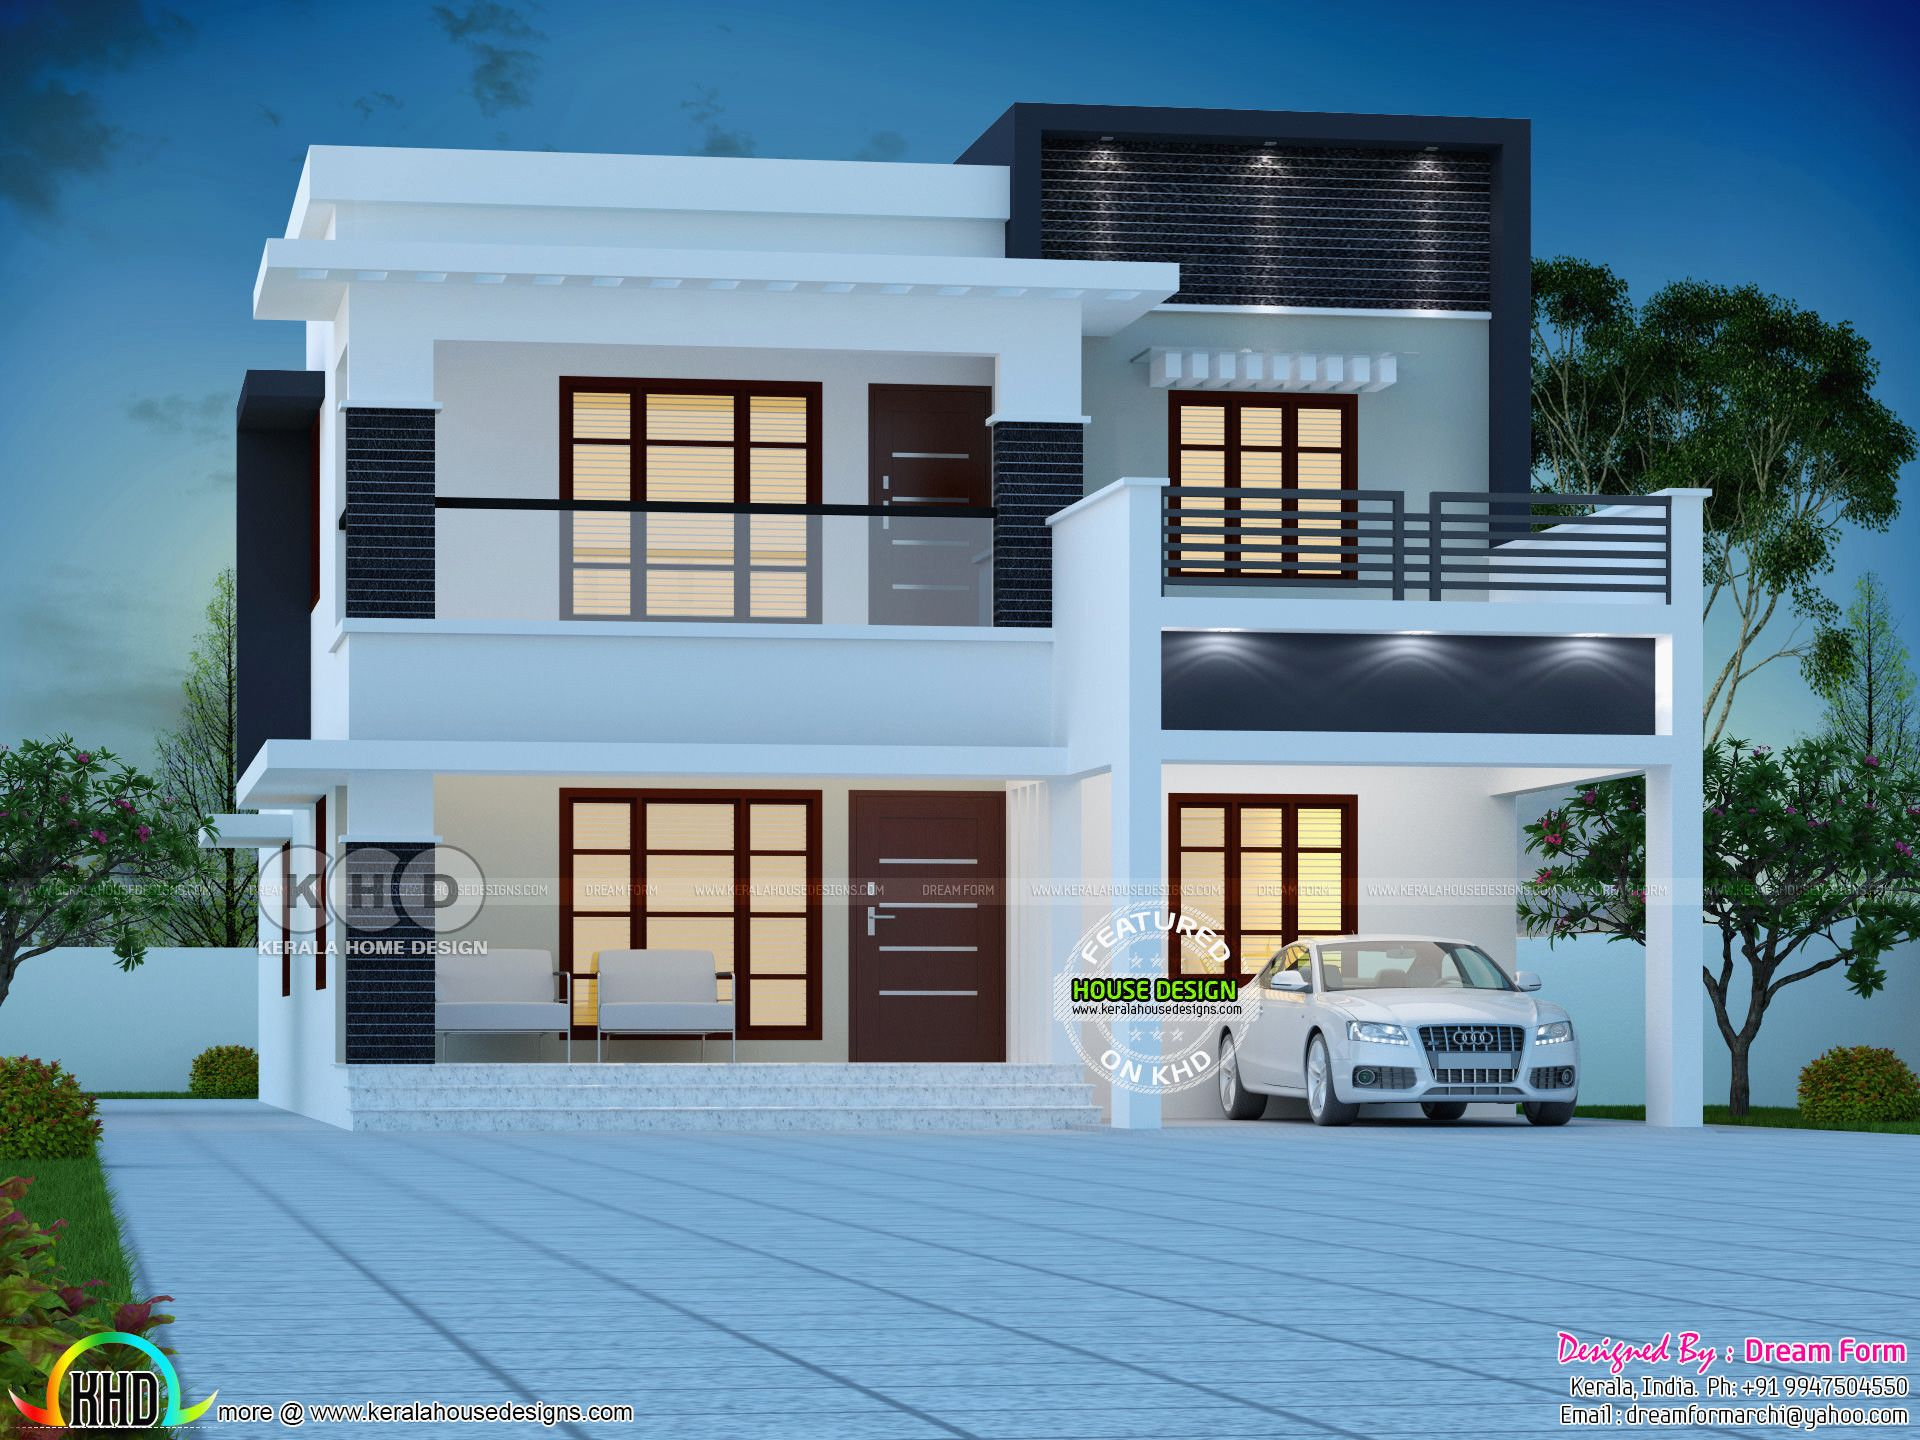 25 Inspirational 1800 Square Feet House Plans Trend 2021 In 2020 Kerala House Design Modern House Plans Duplex House Design